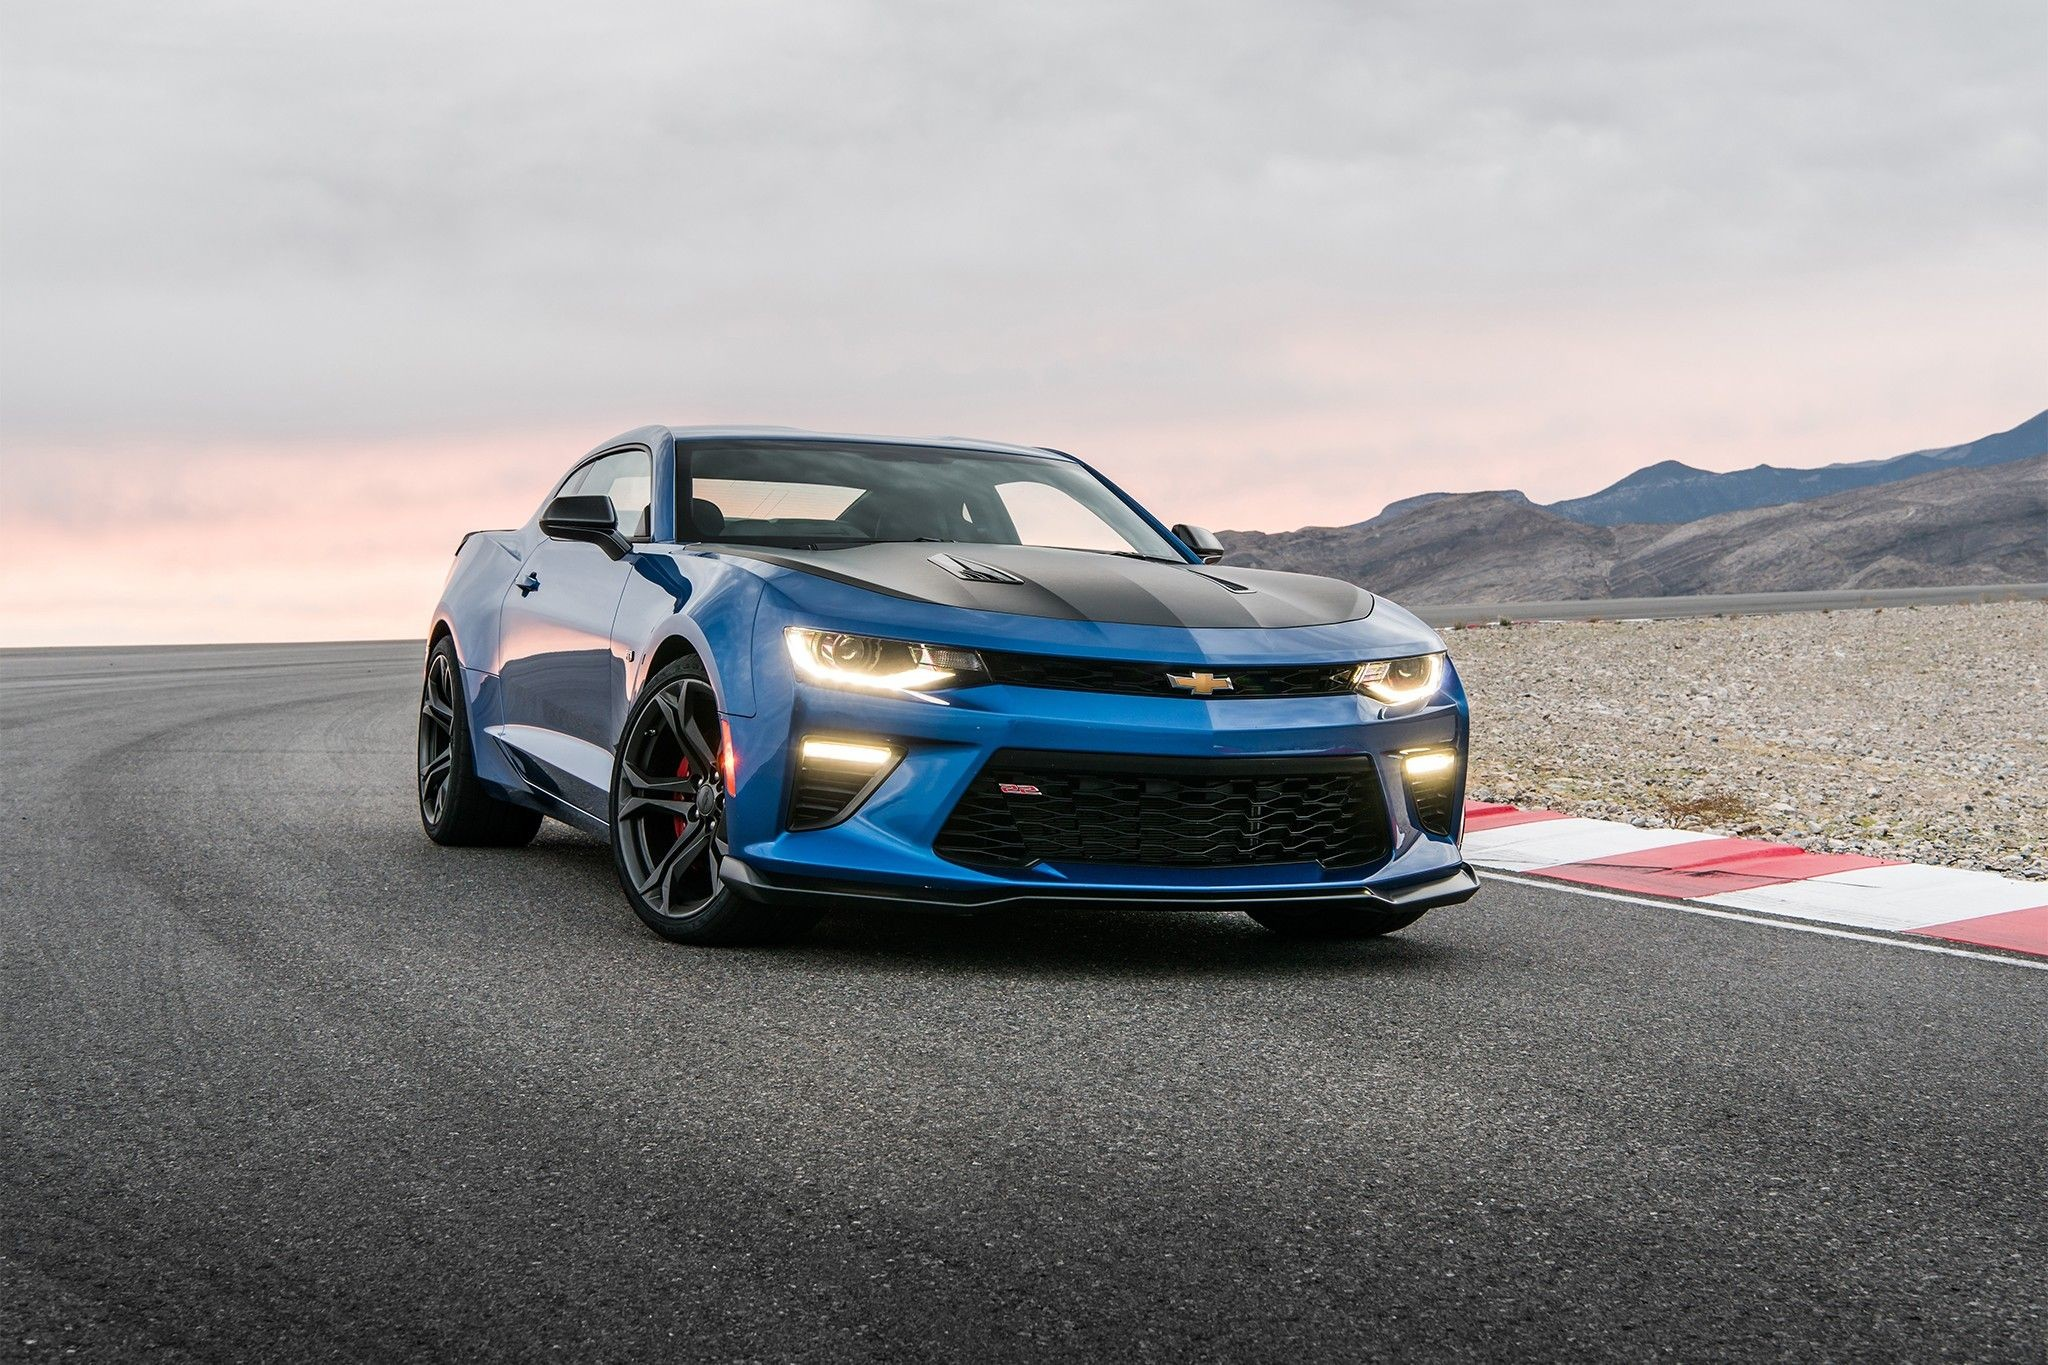 Res: 2048x1365, Chevrolet Camaro Zl1 1le Wallpaper High Quality Resolution